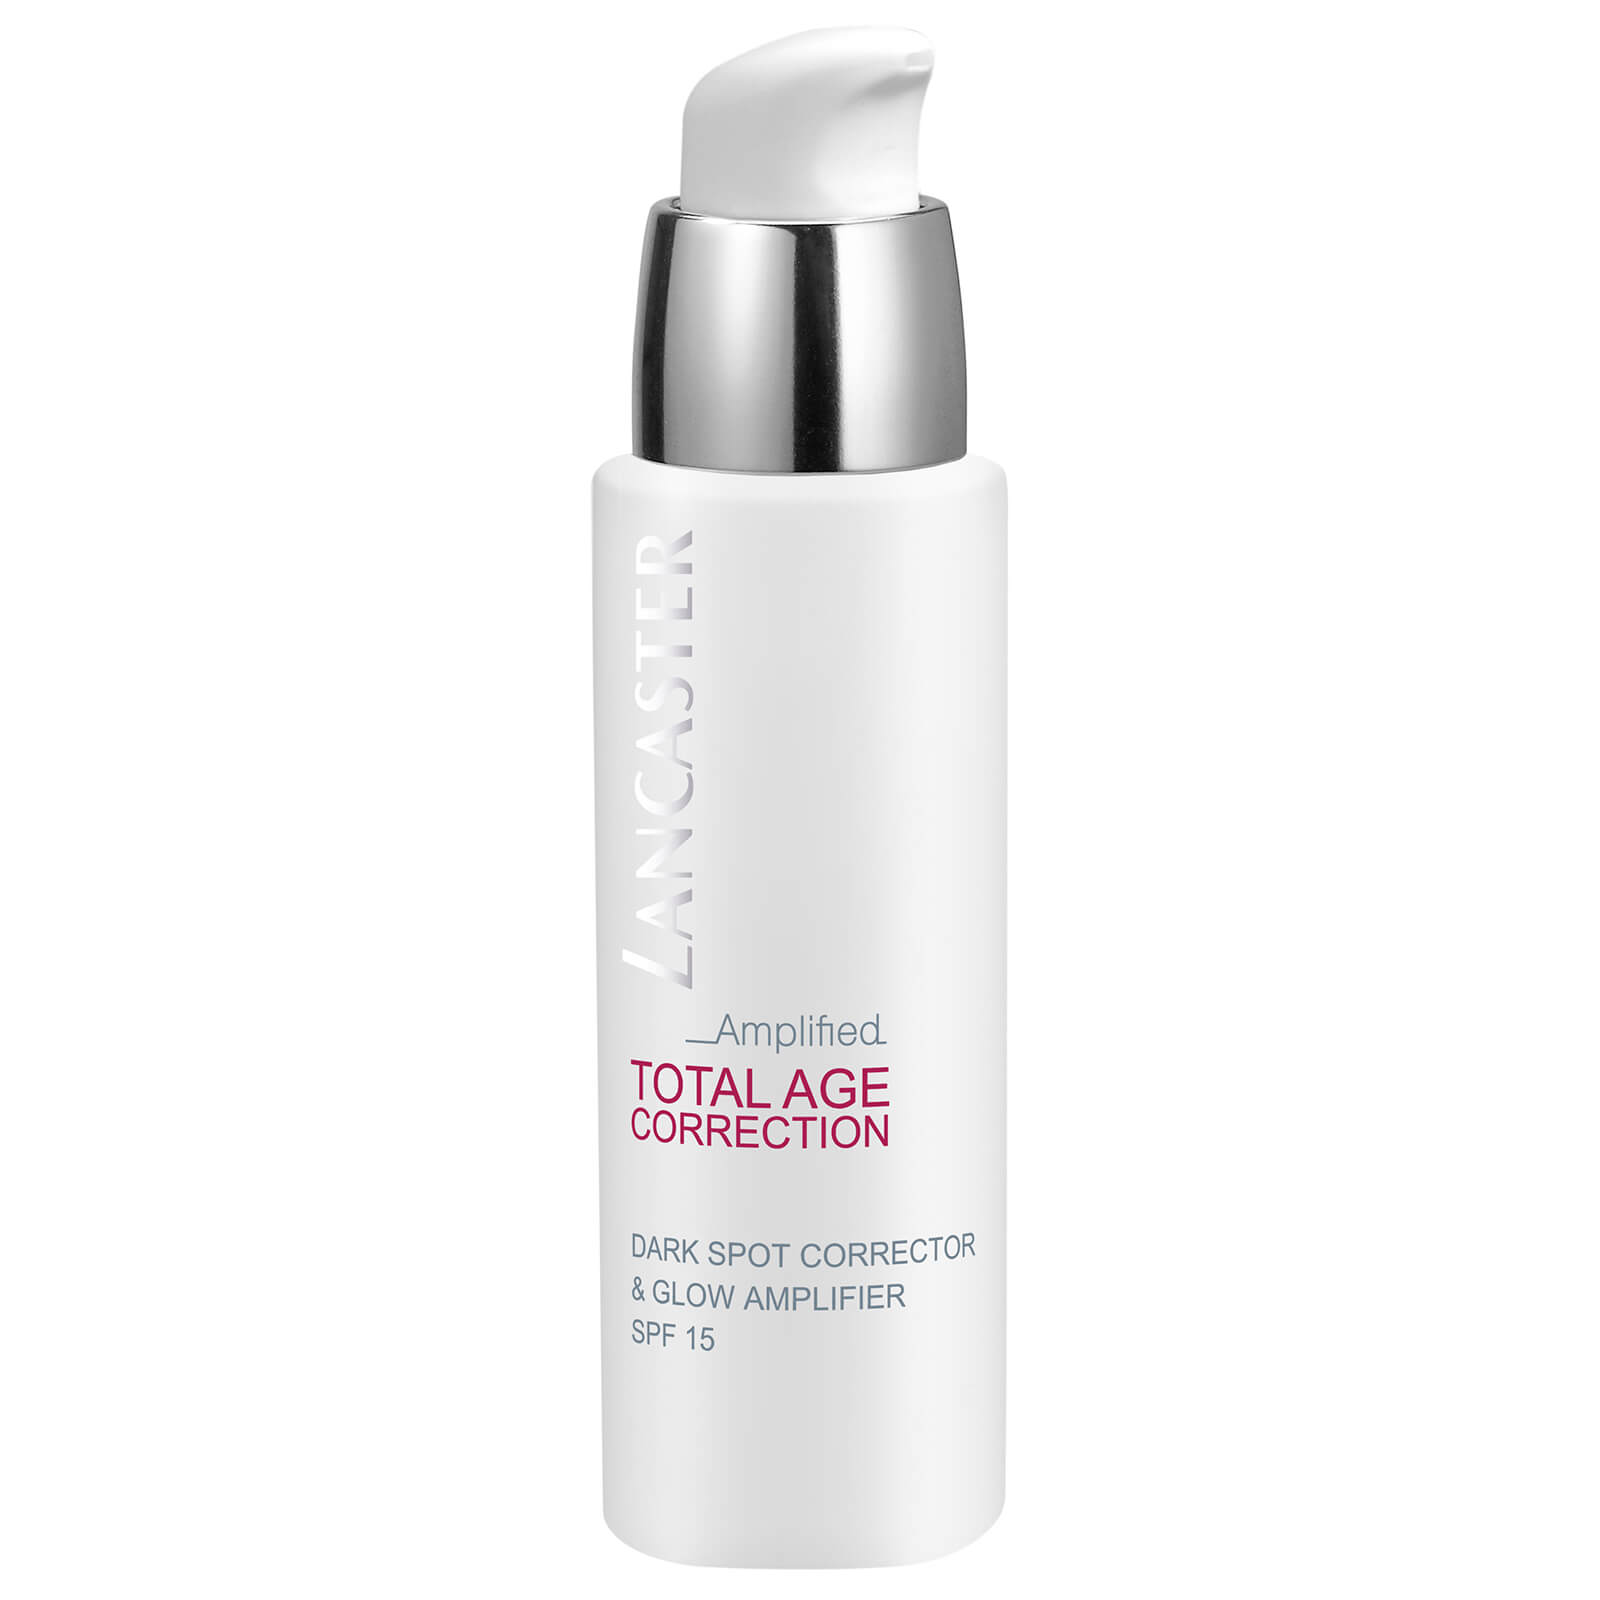 Lancaster Total Age Correction Amplified Dark Spot Corrector and Glow Amplifier SPF15 30ml